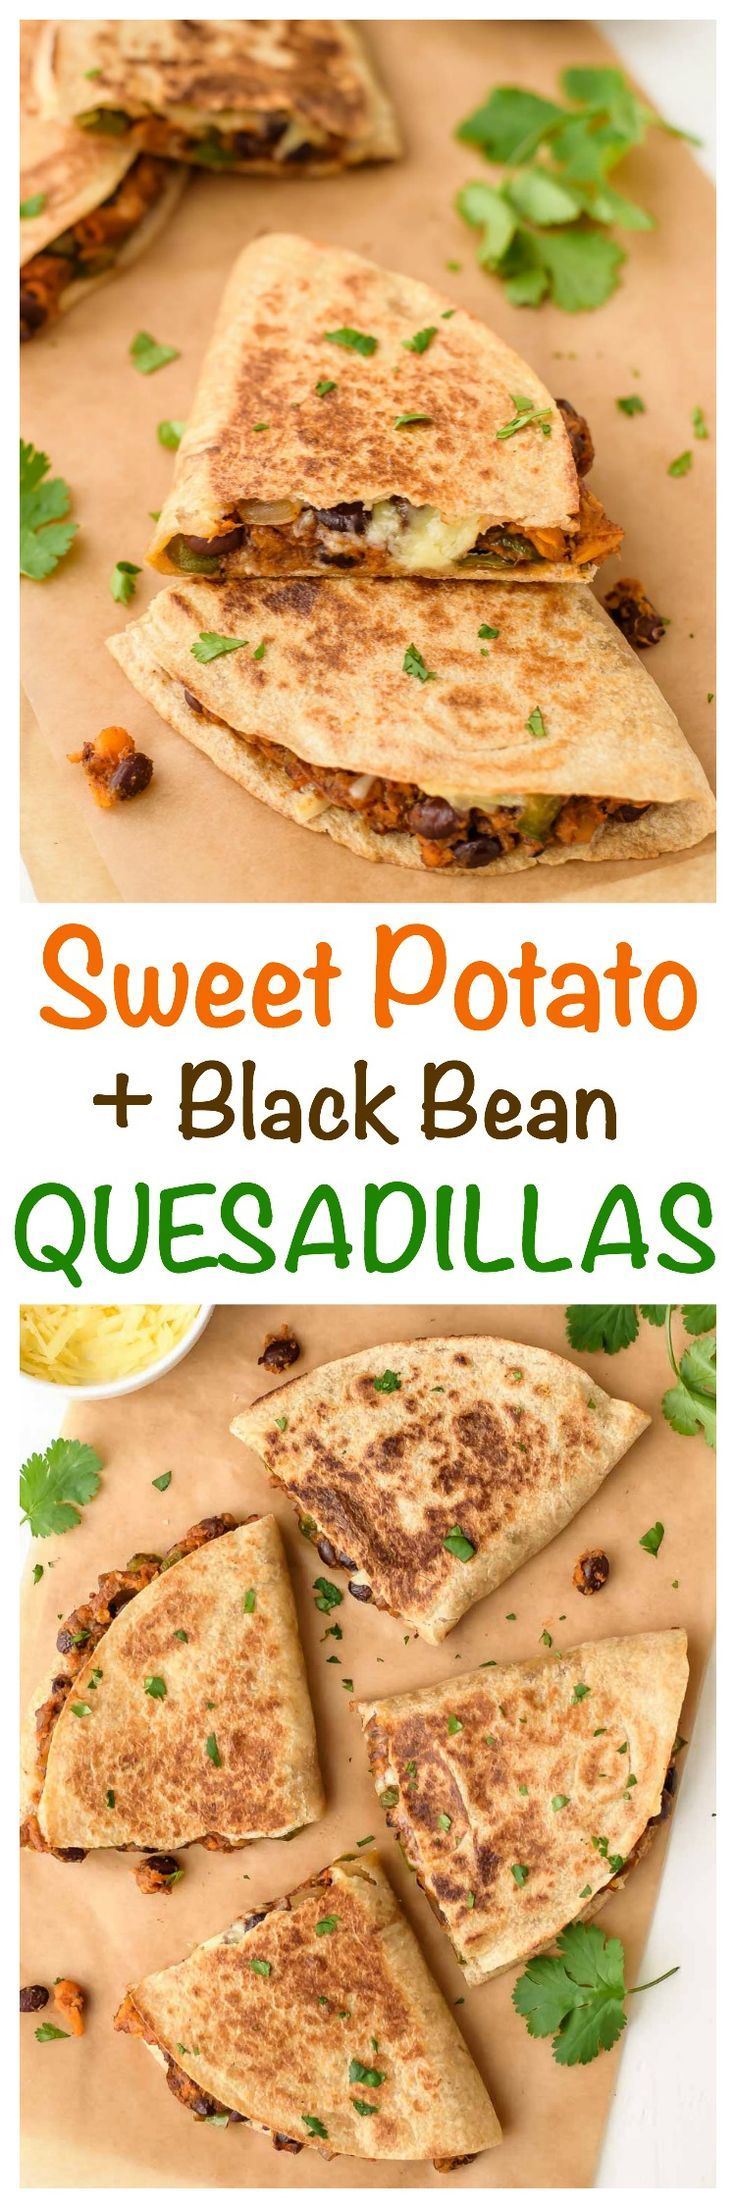 Crispy, cheesy Sweet Potato Black Bean Quesadillas. Filling, healthy, and packed with flavor! Cheap, easy way to get lots of super foods, and the filling is freezer friendly too! www.wellplated.com